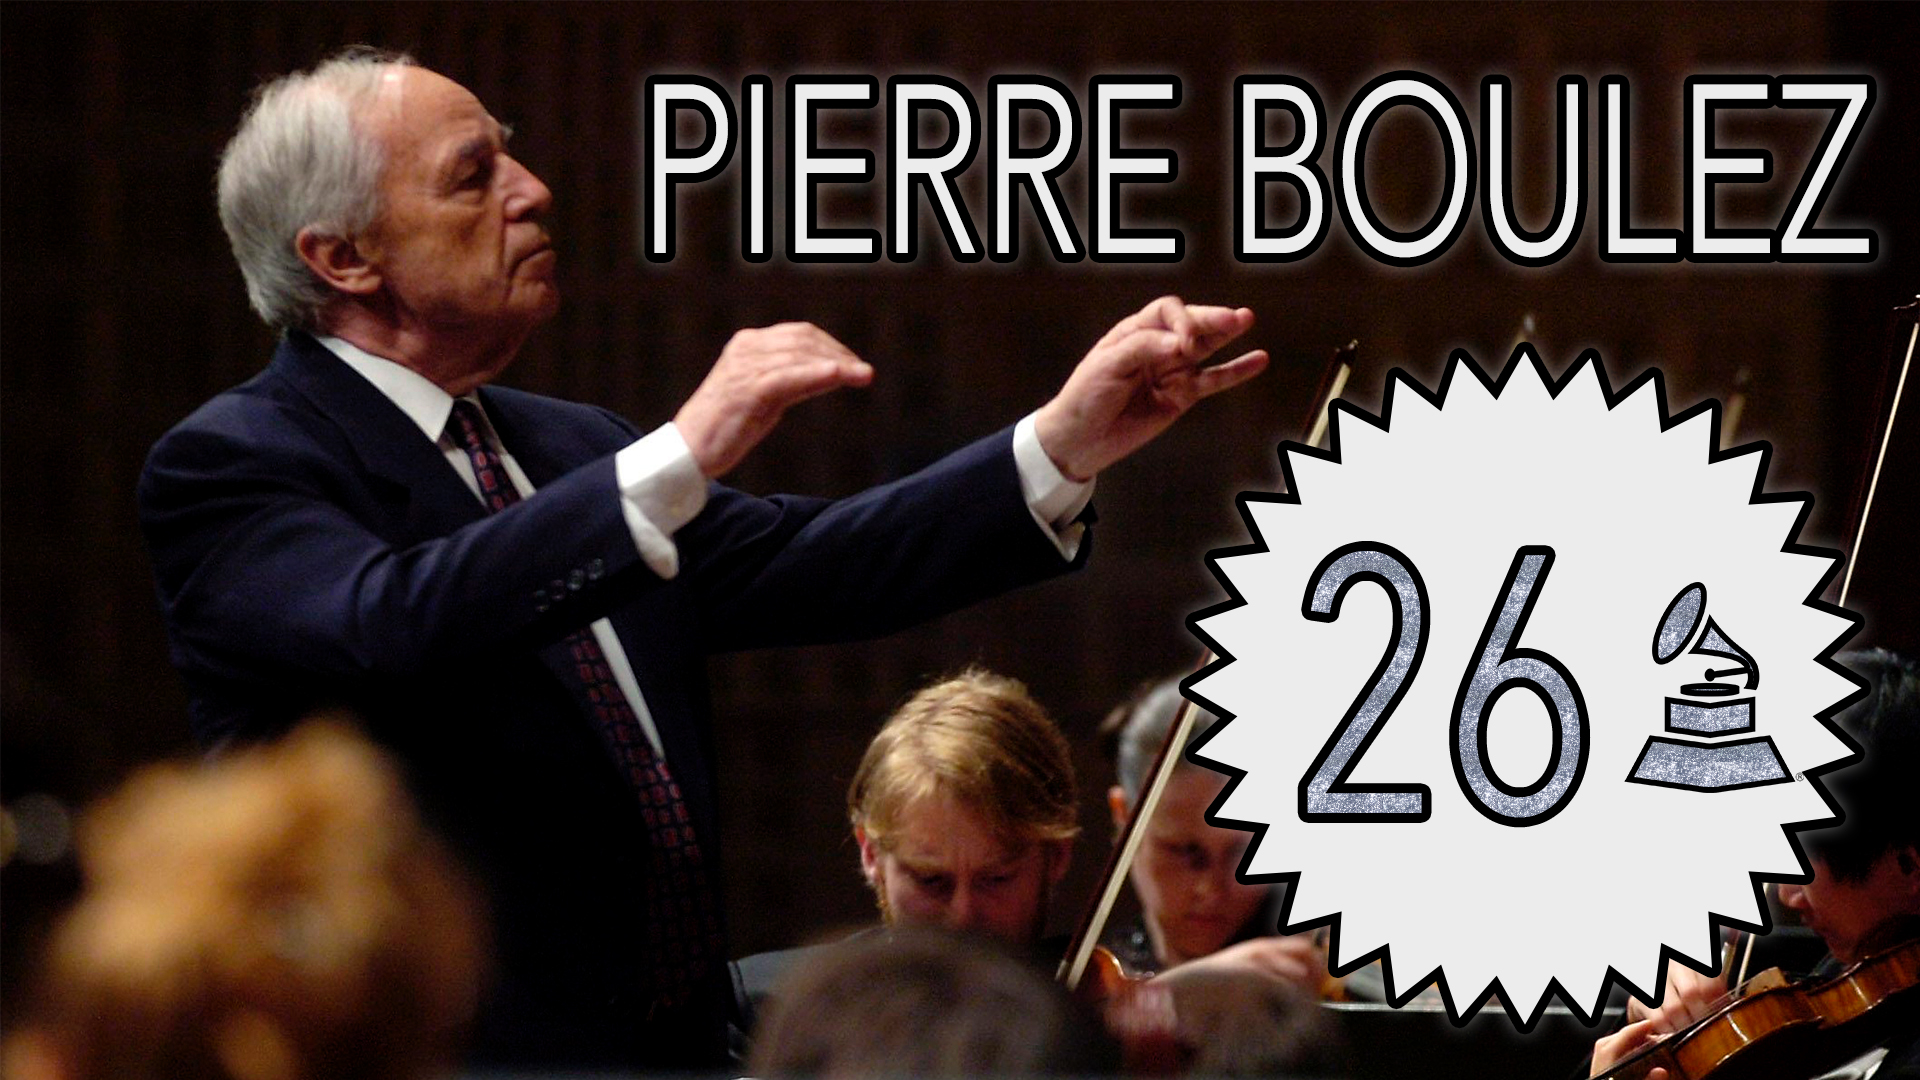 Pierre Boulez with 26 GRAMMY Awards